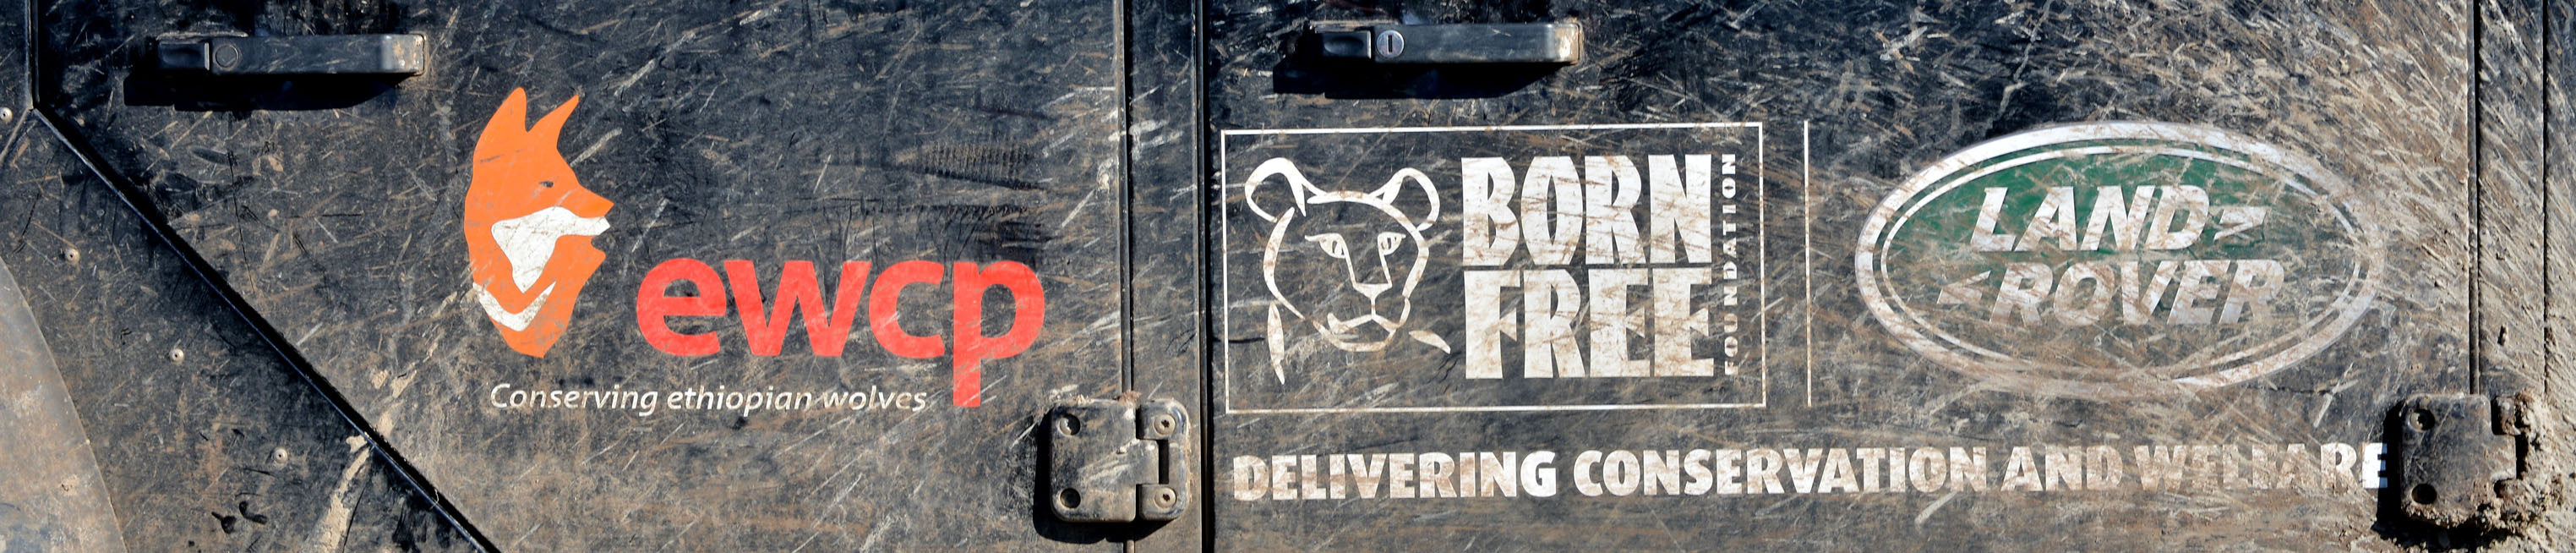 Land Rover Born Free 2 banner